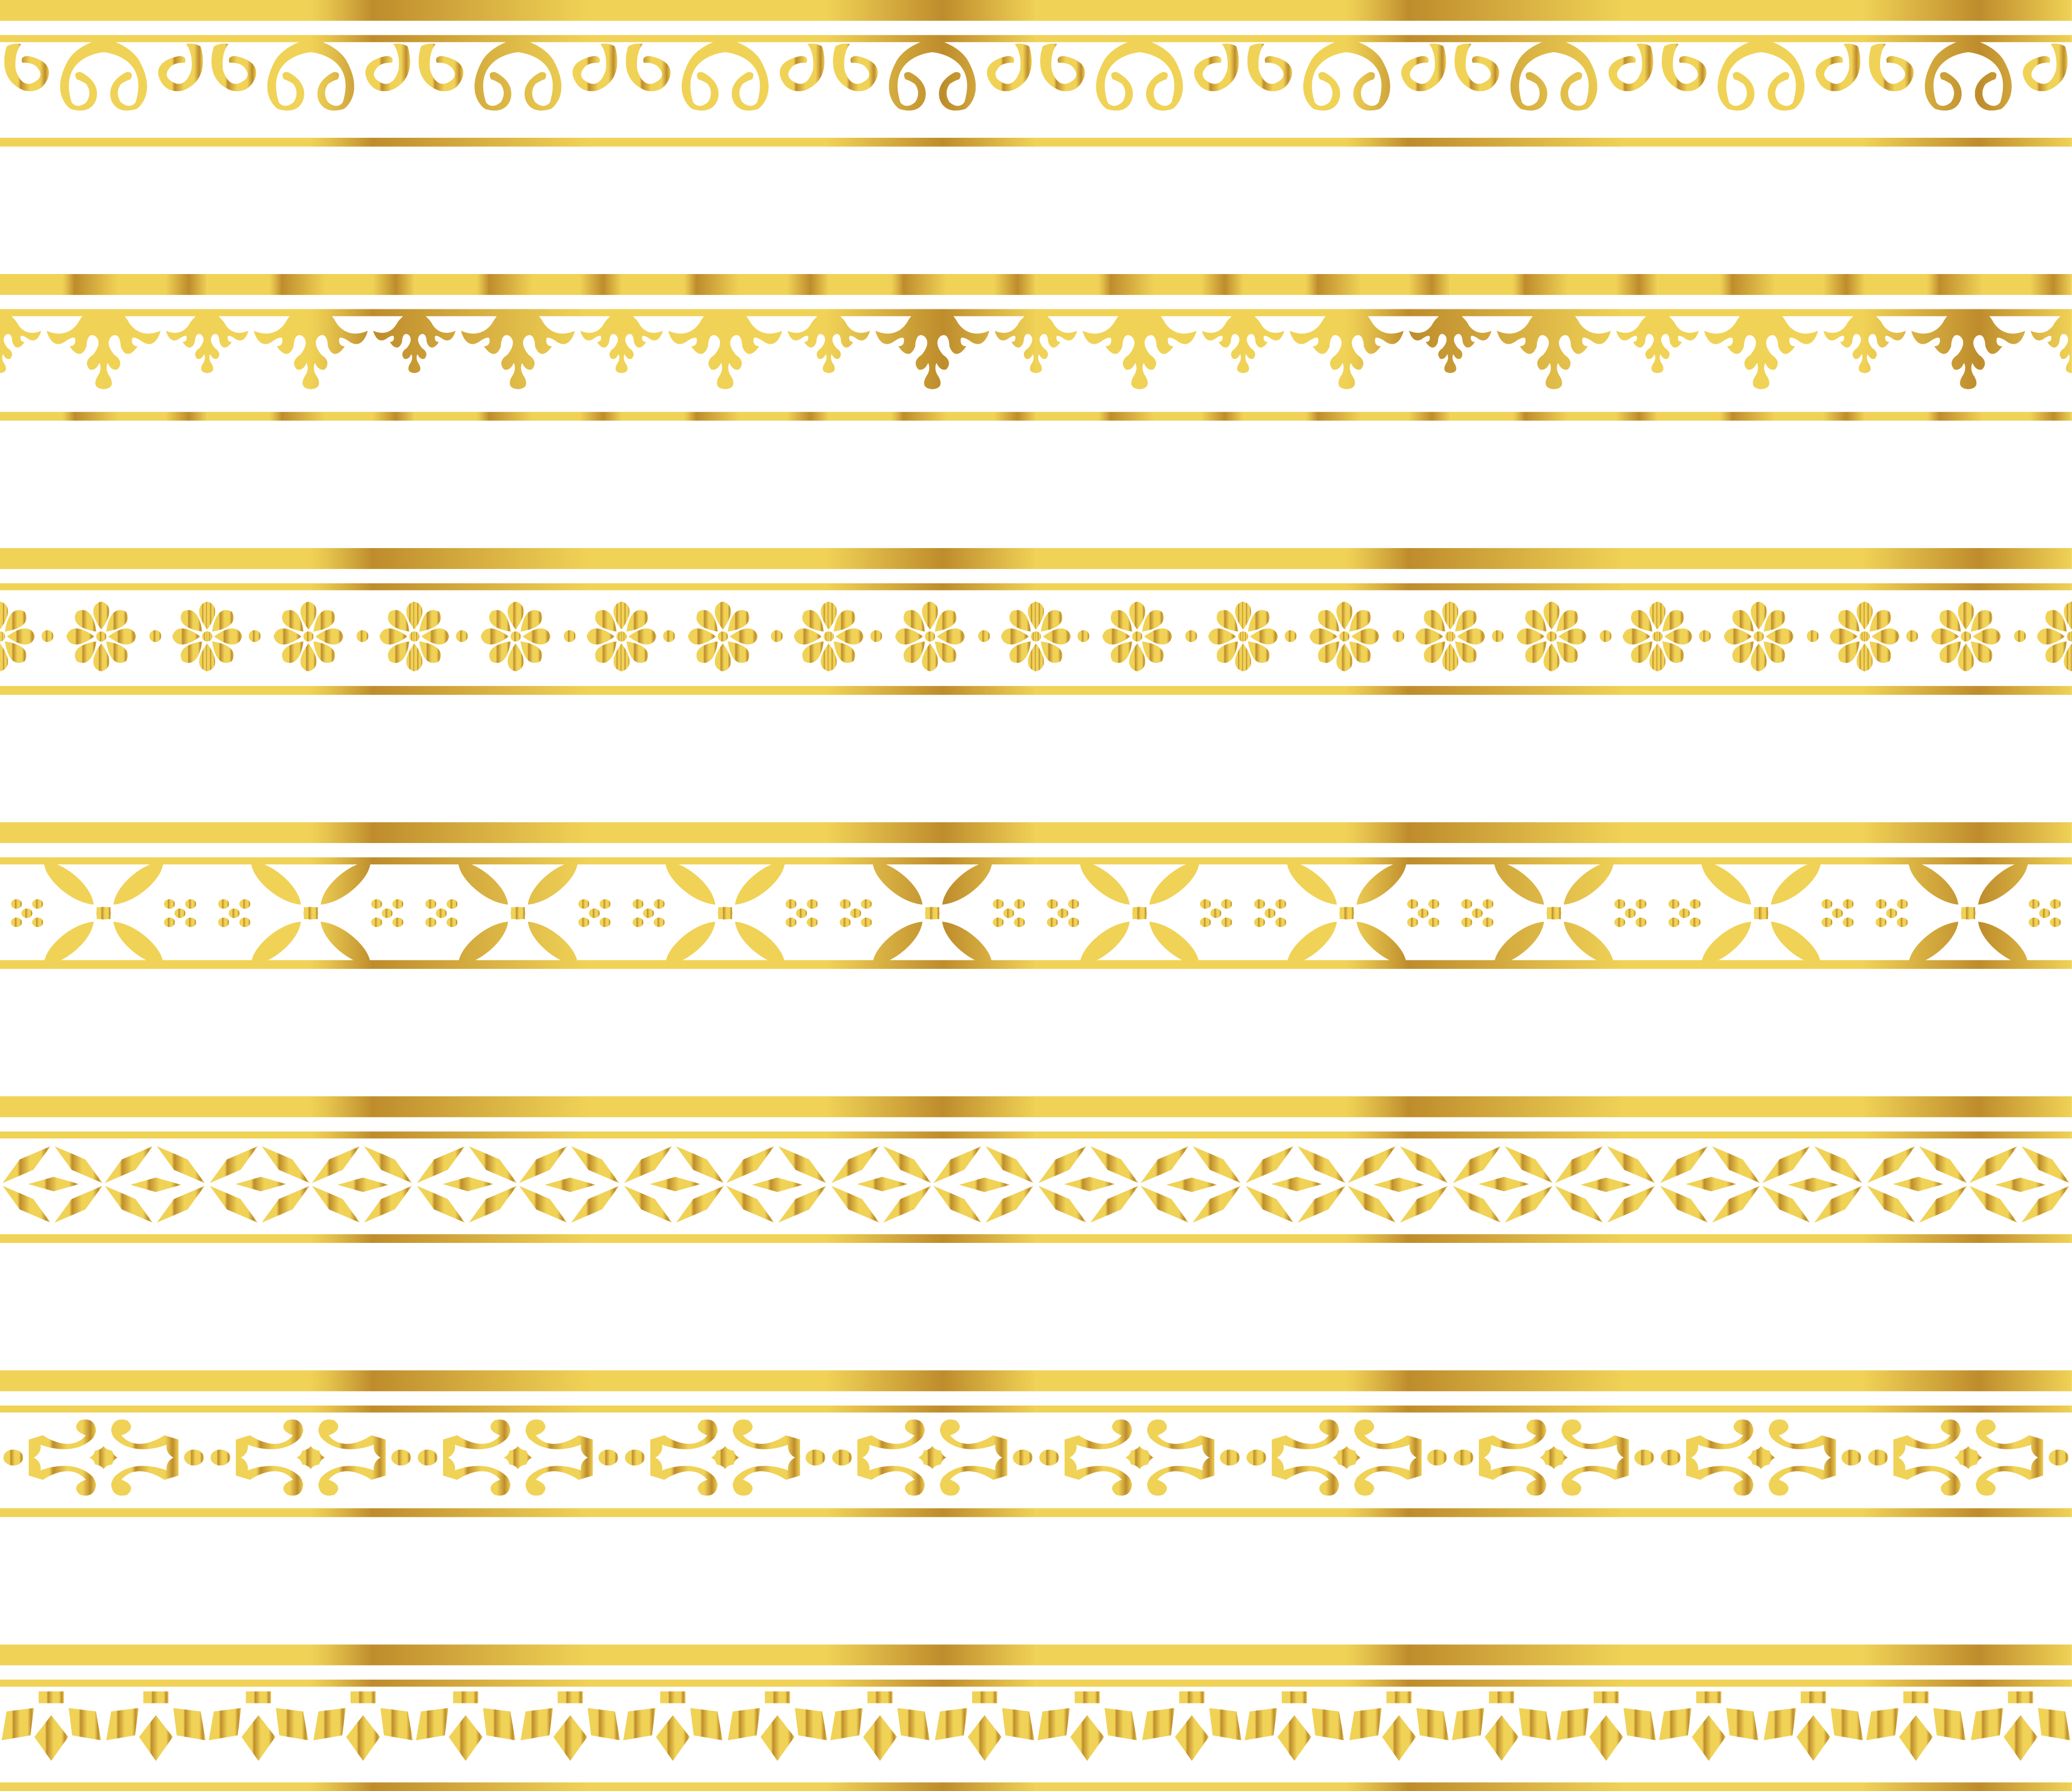 Gold lace border png. Delicate transprent free download